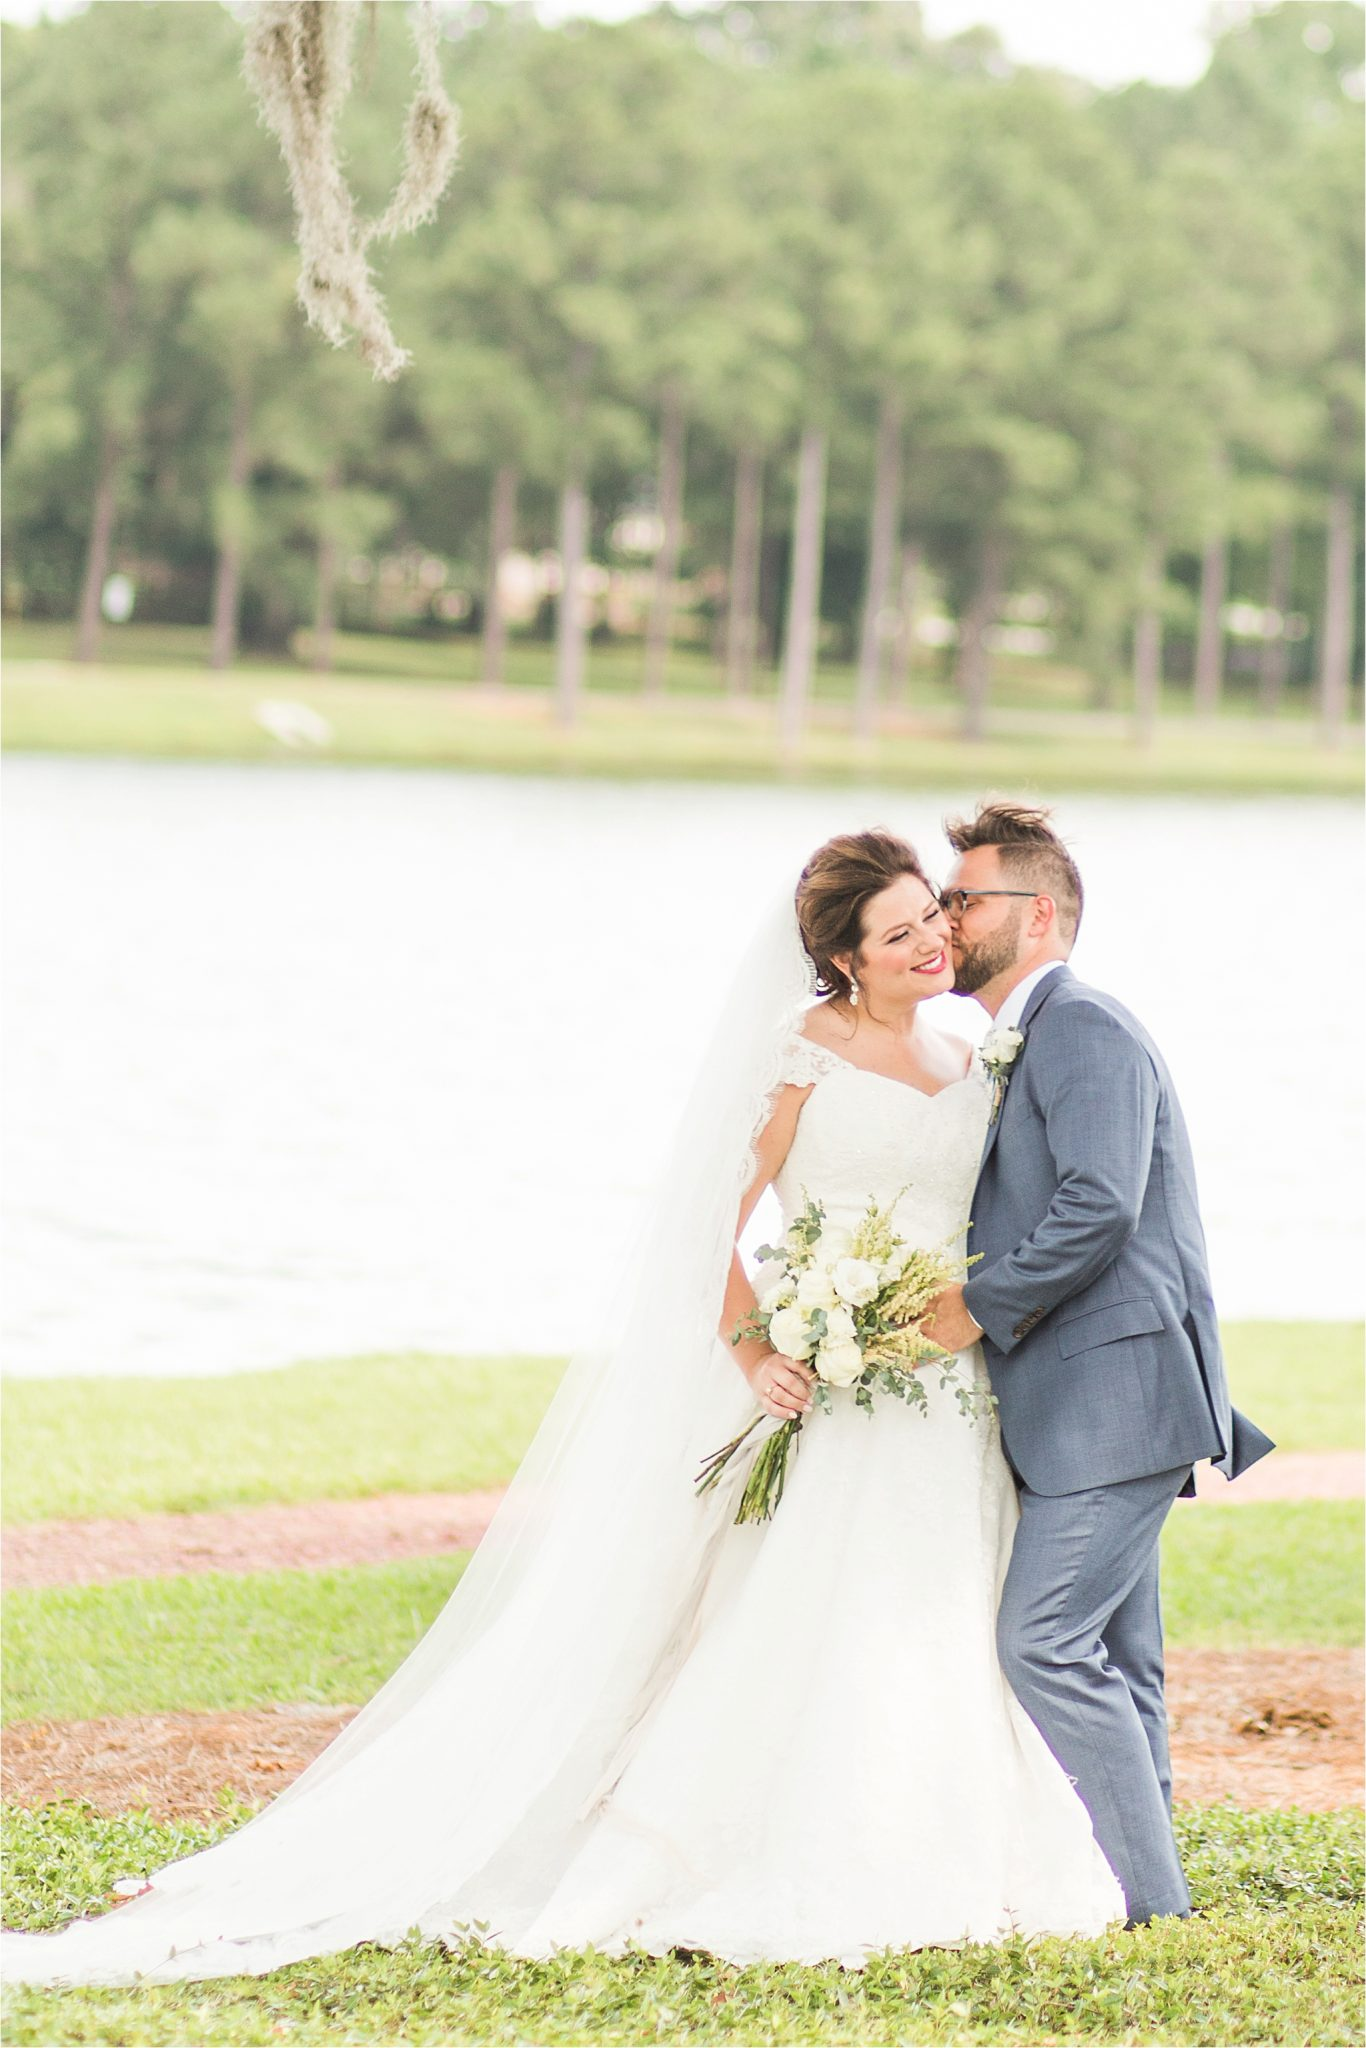 Pastel Themed Wedding-The Chapel at the Waters-Montgomery Alabama Photographer-Miles & Meredyth-Blue Themed Wedding-Bride Bouquet-Wedding Dress